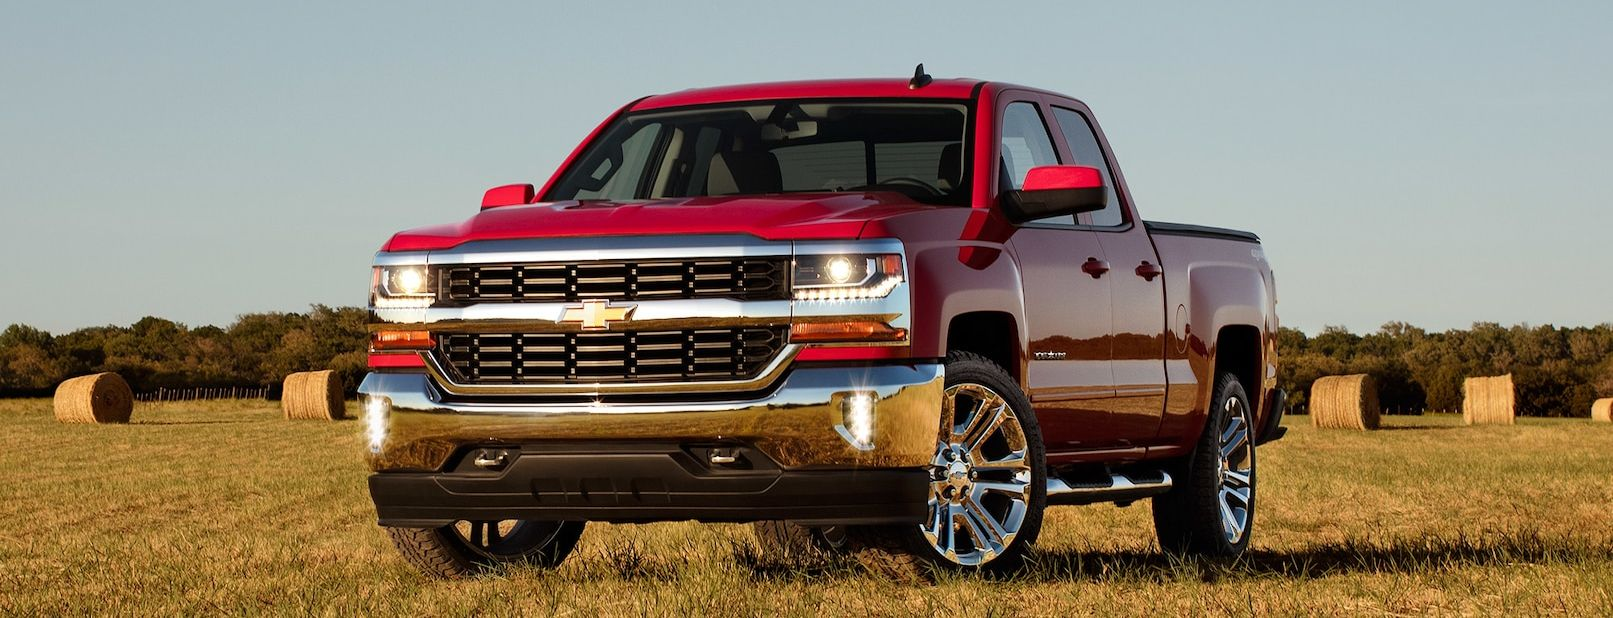 2019 Chevrolet Silverado 1500 for Sale near Schererville, IN